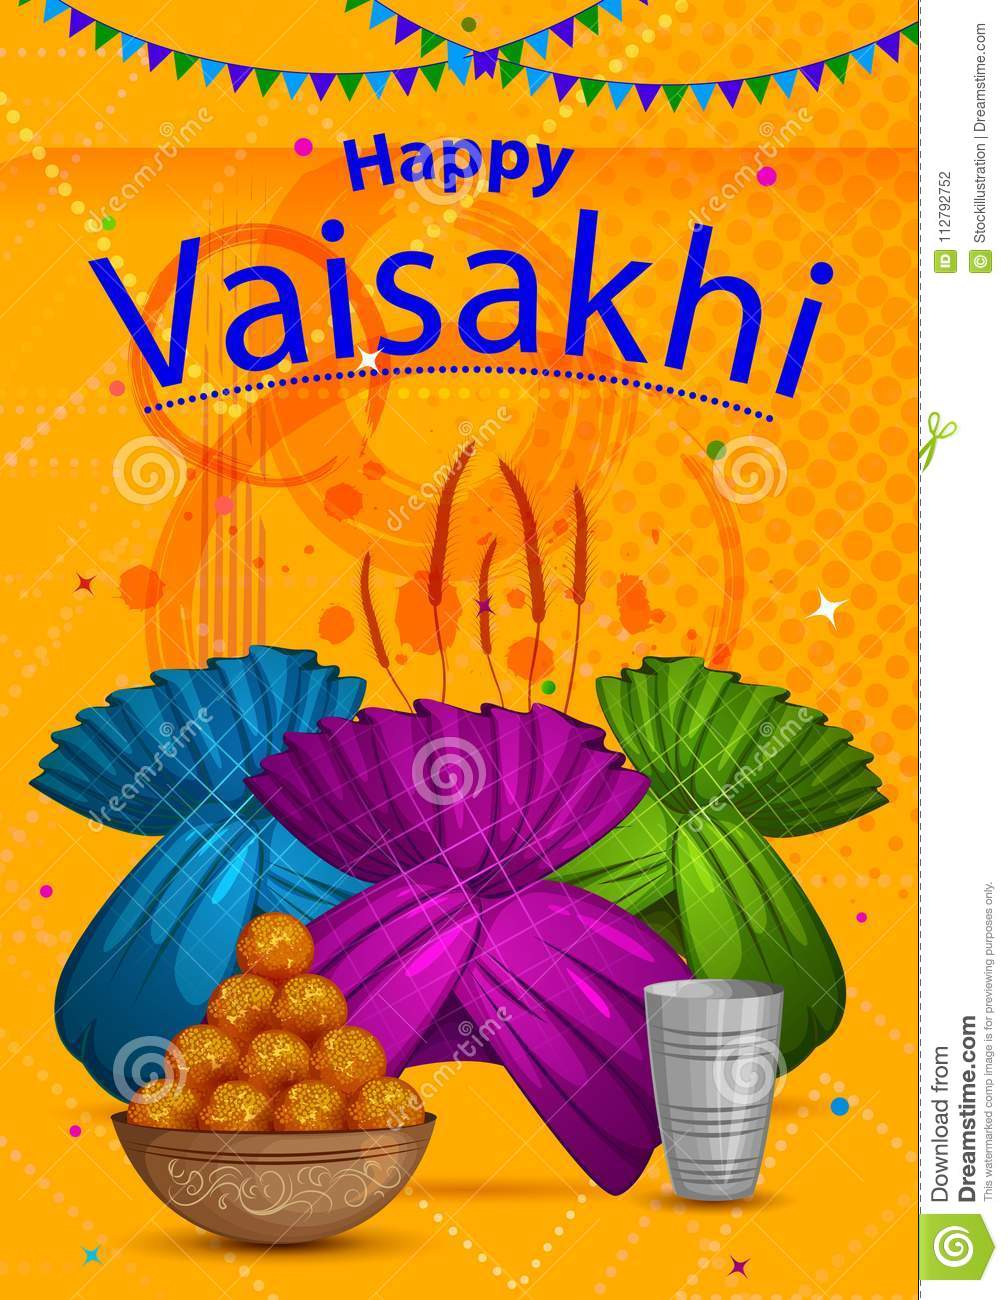 happy vaisakhi punjabi religious holiday background for new year festival of punjab india